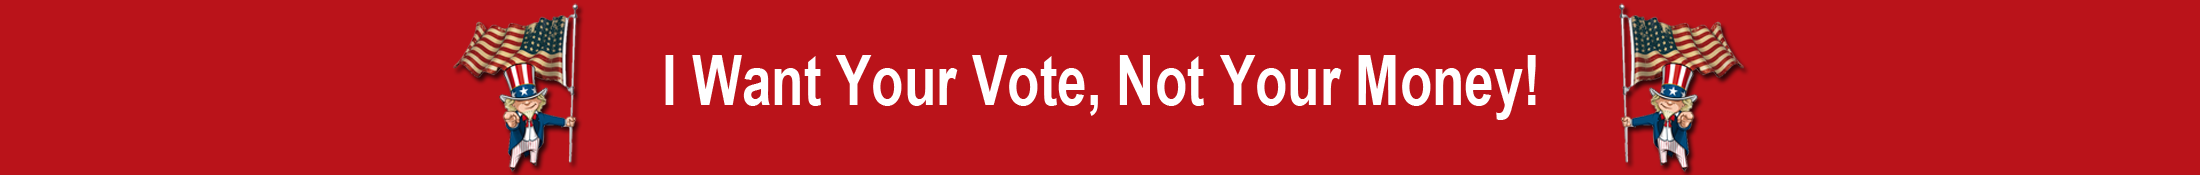 Want-Your-Vote-Banner02